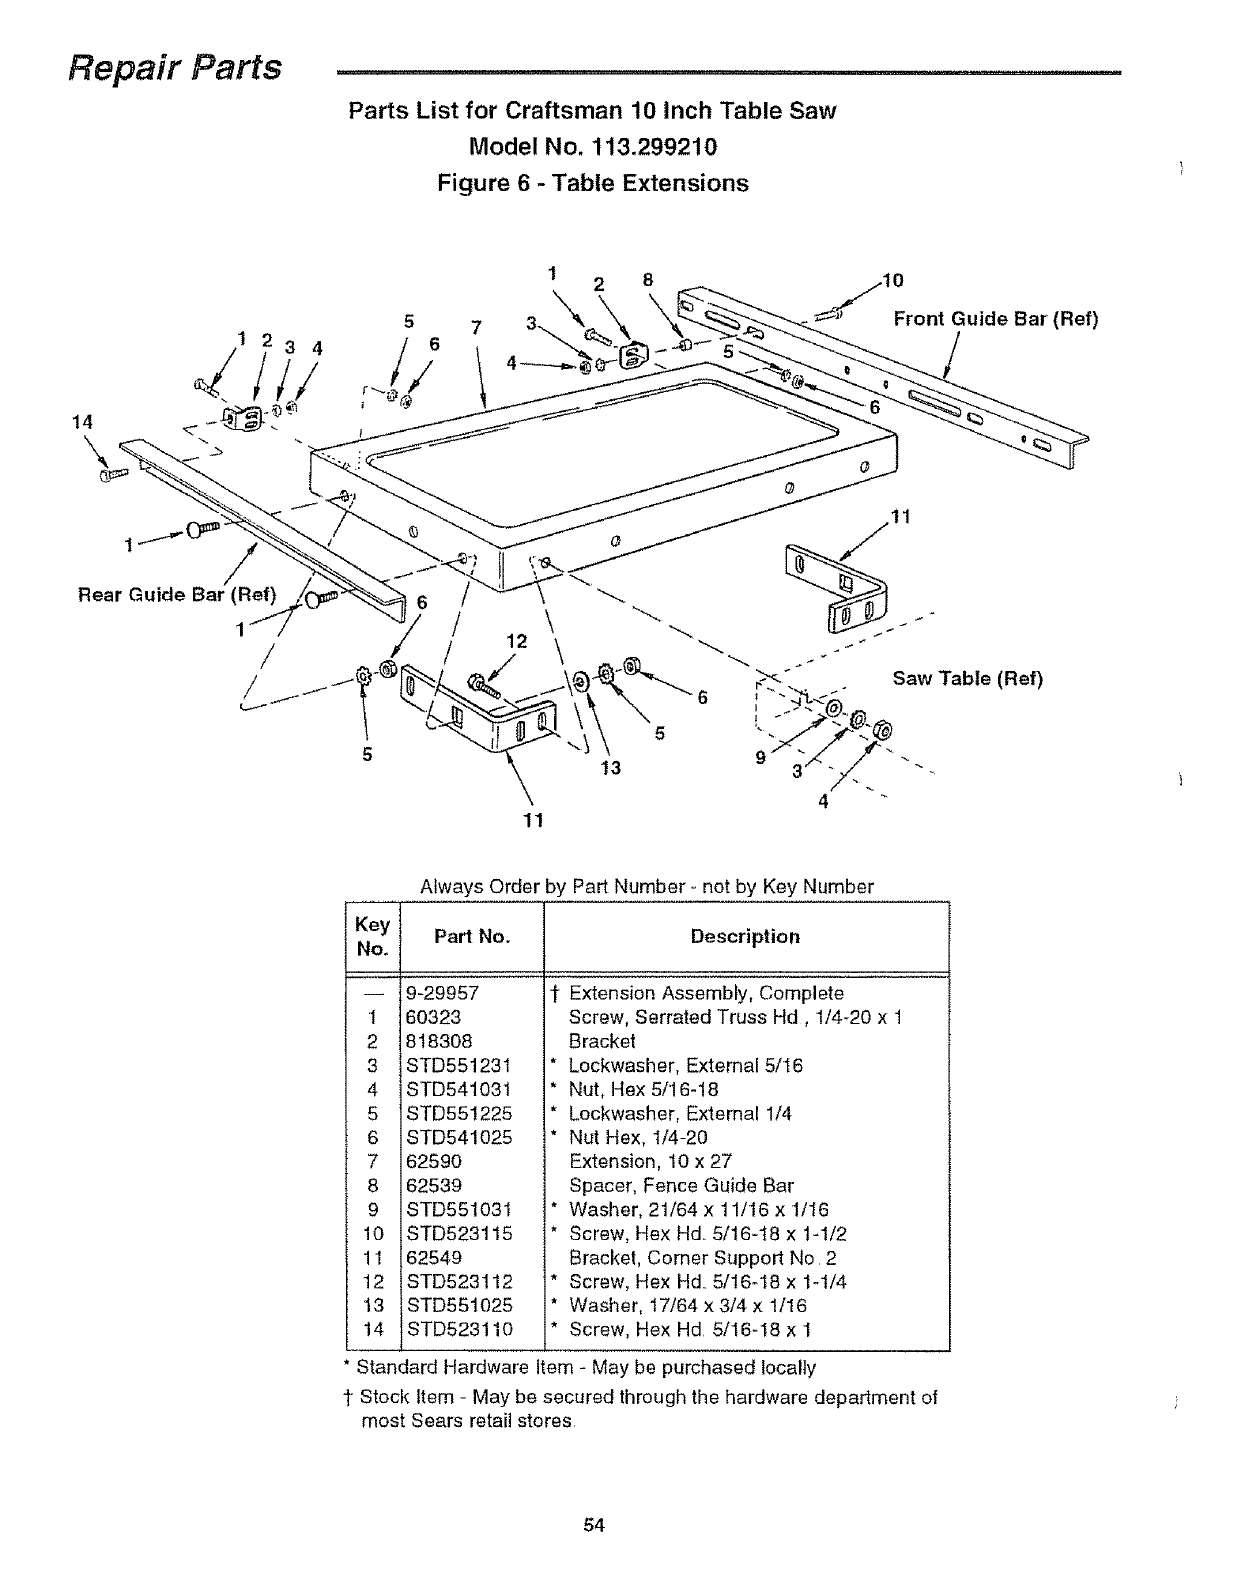 Page 54 of Craftsman Saw 113.29921 User Guide